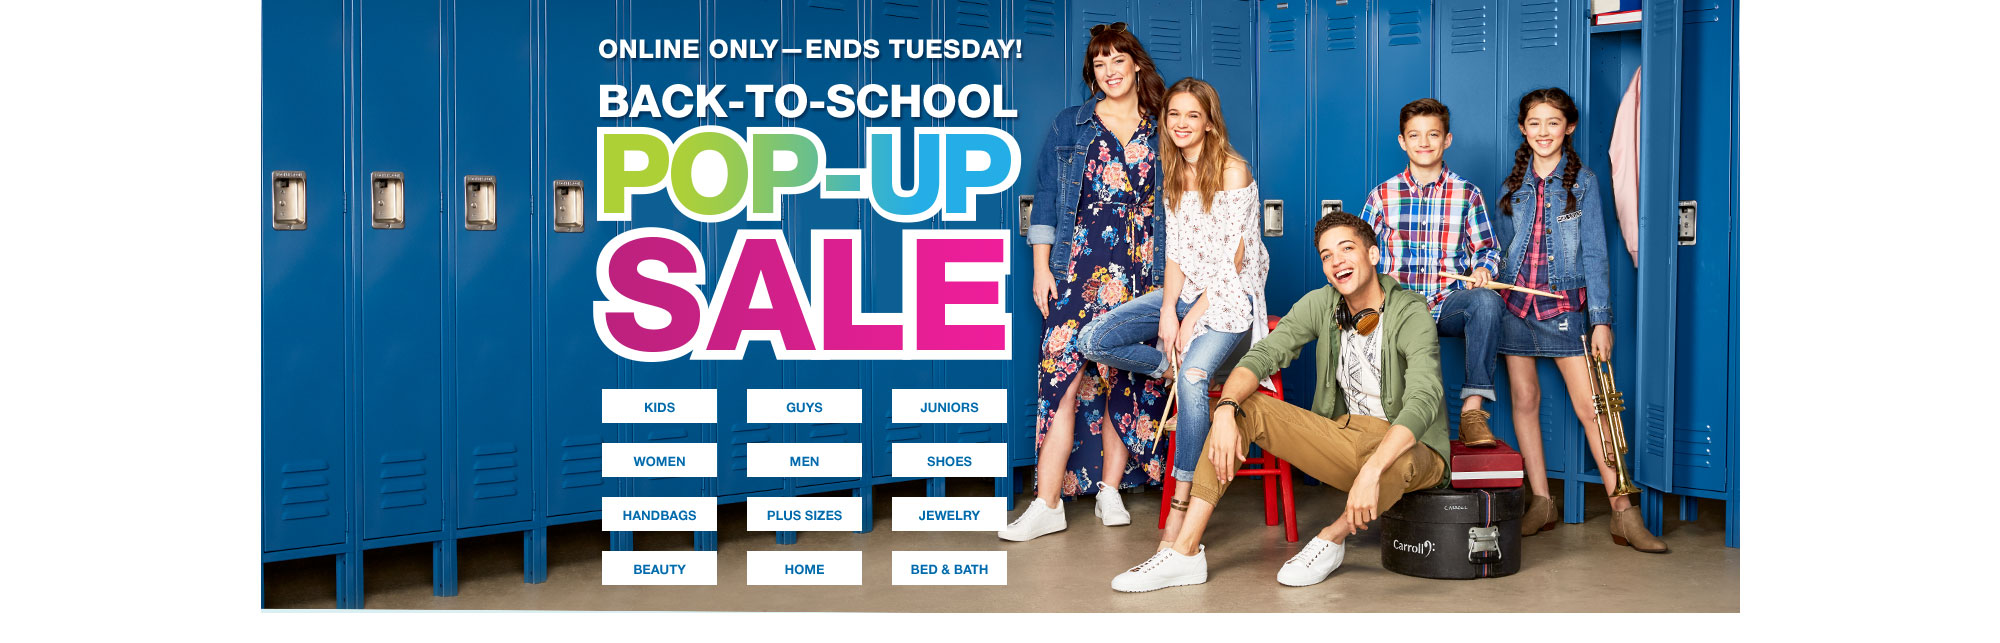 online only - ends tuesday! back-to-school pop-up sale